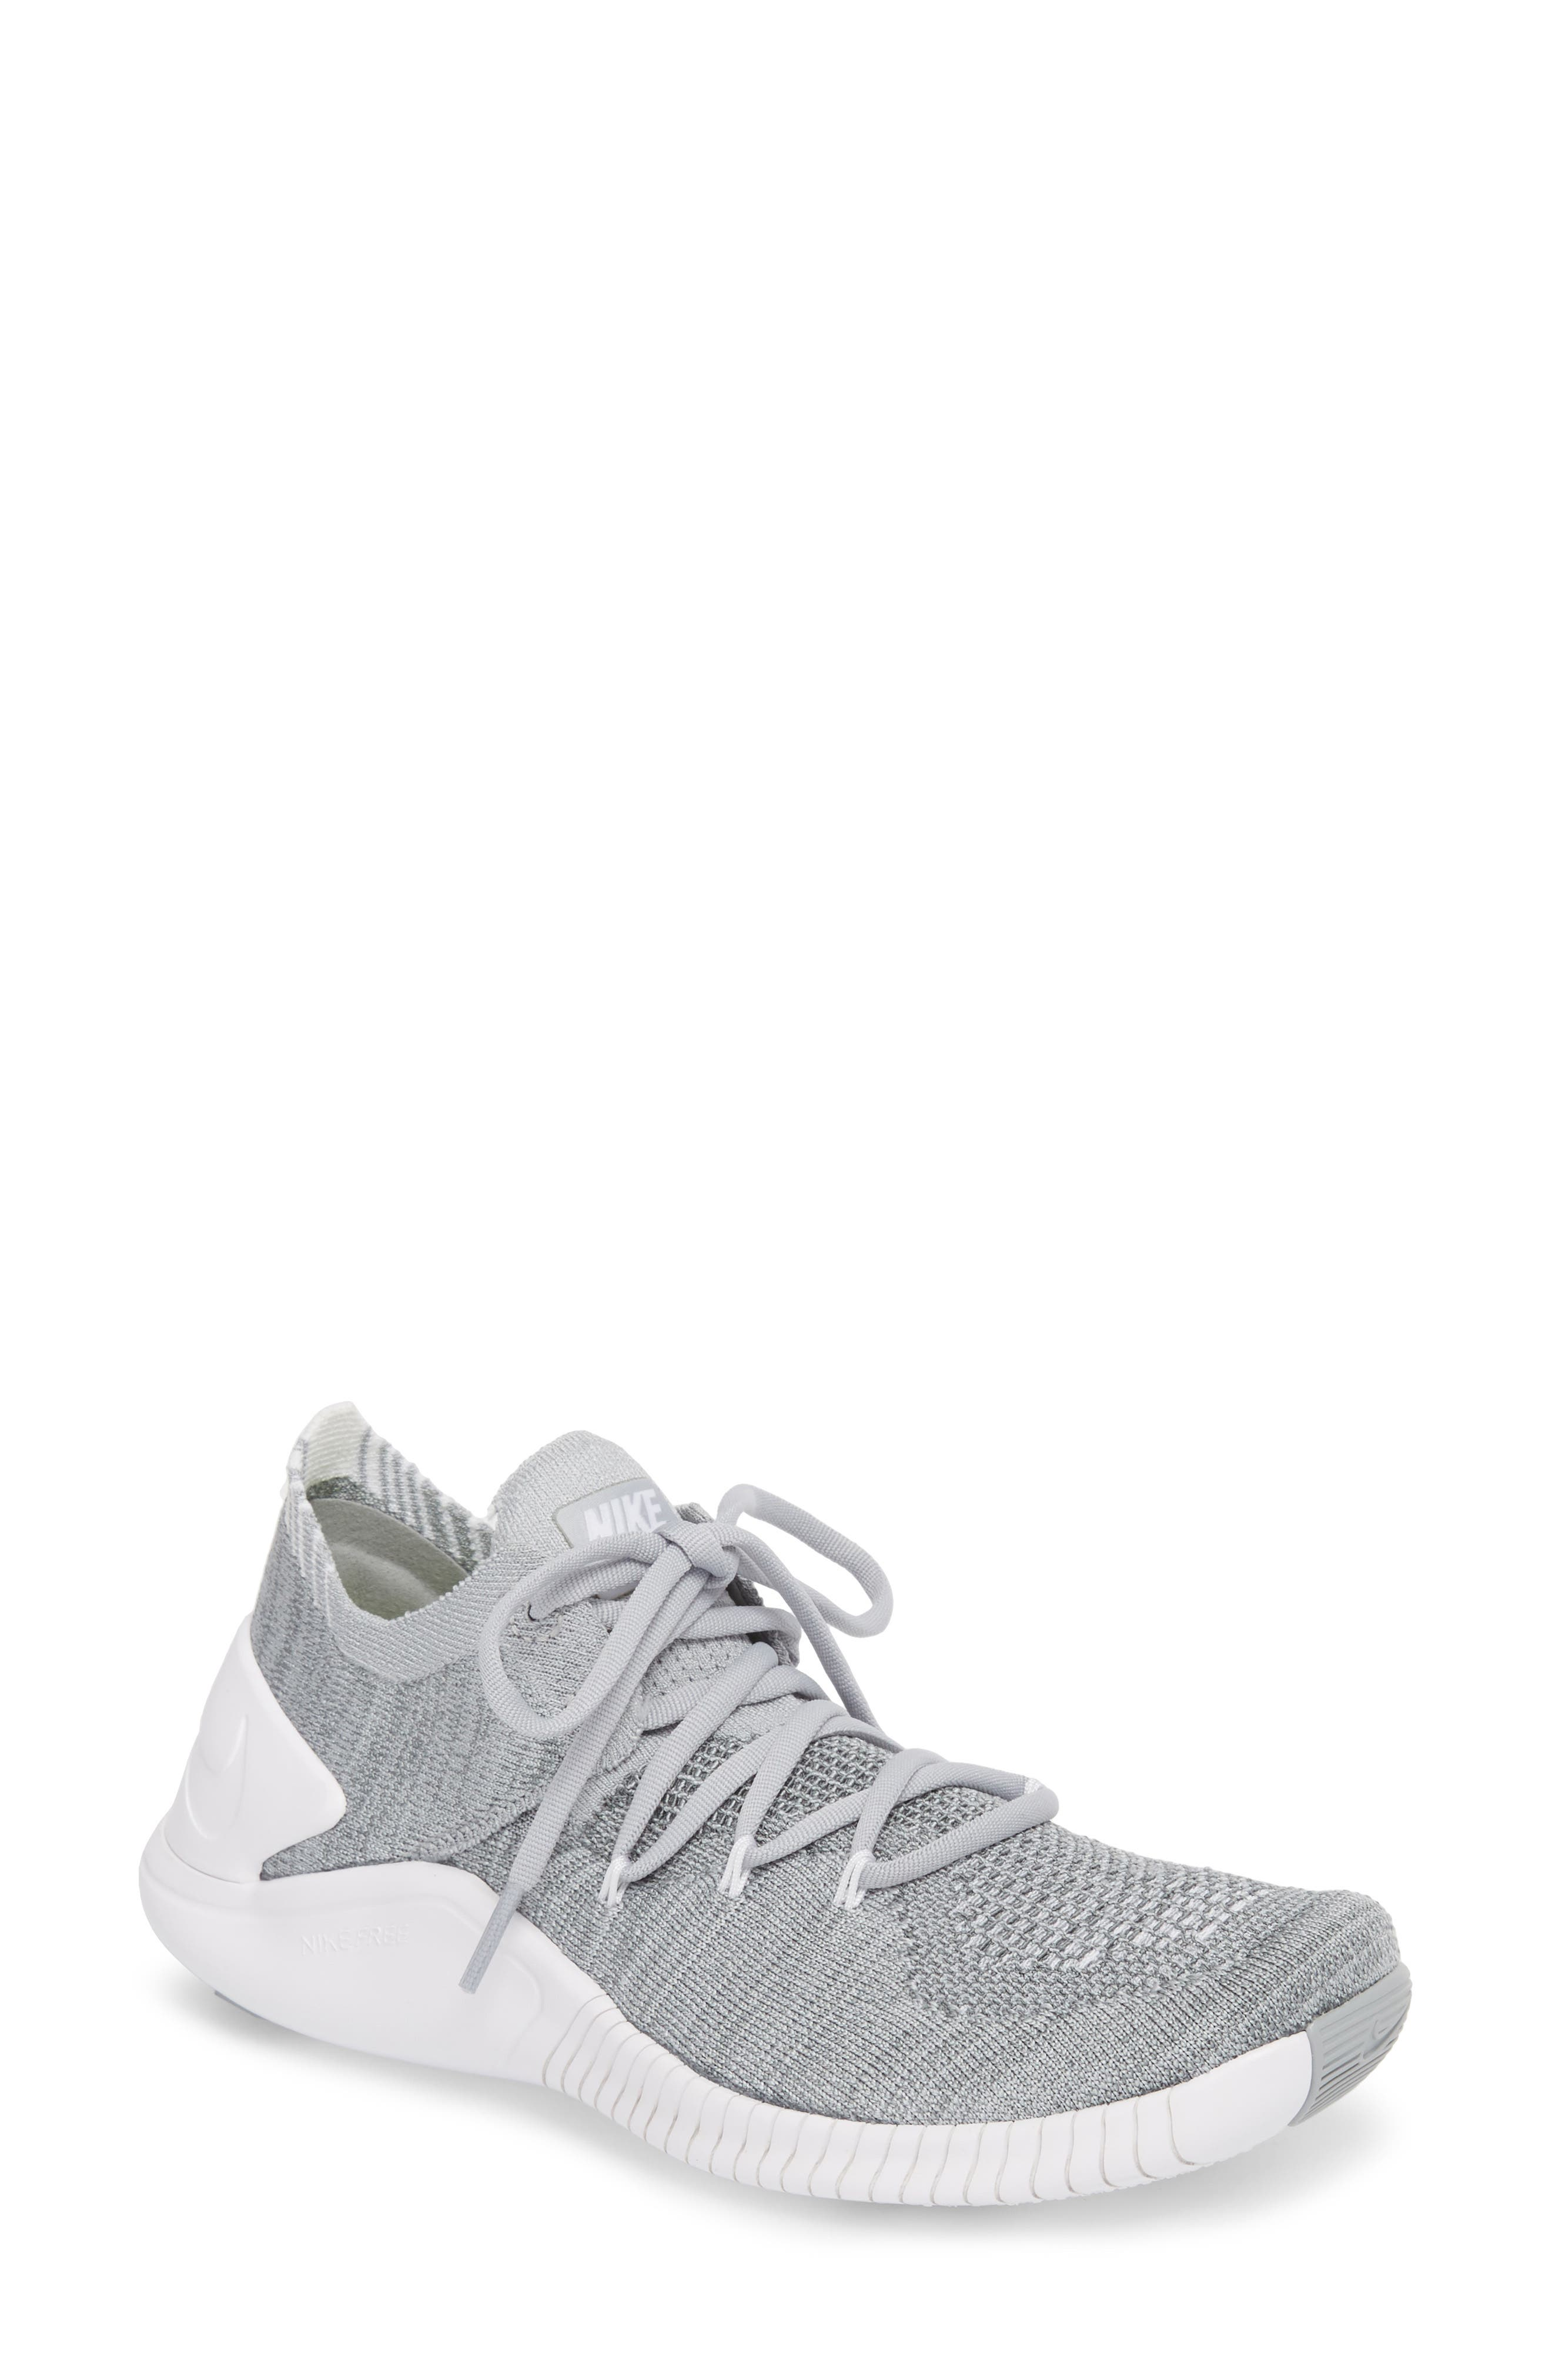 Free TR Flyknit 3 Training Shoe,                         Main,                         color, WOLF GREY/ WHITE